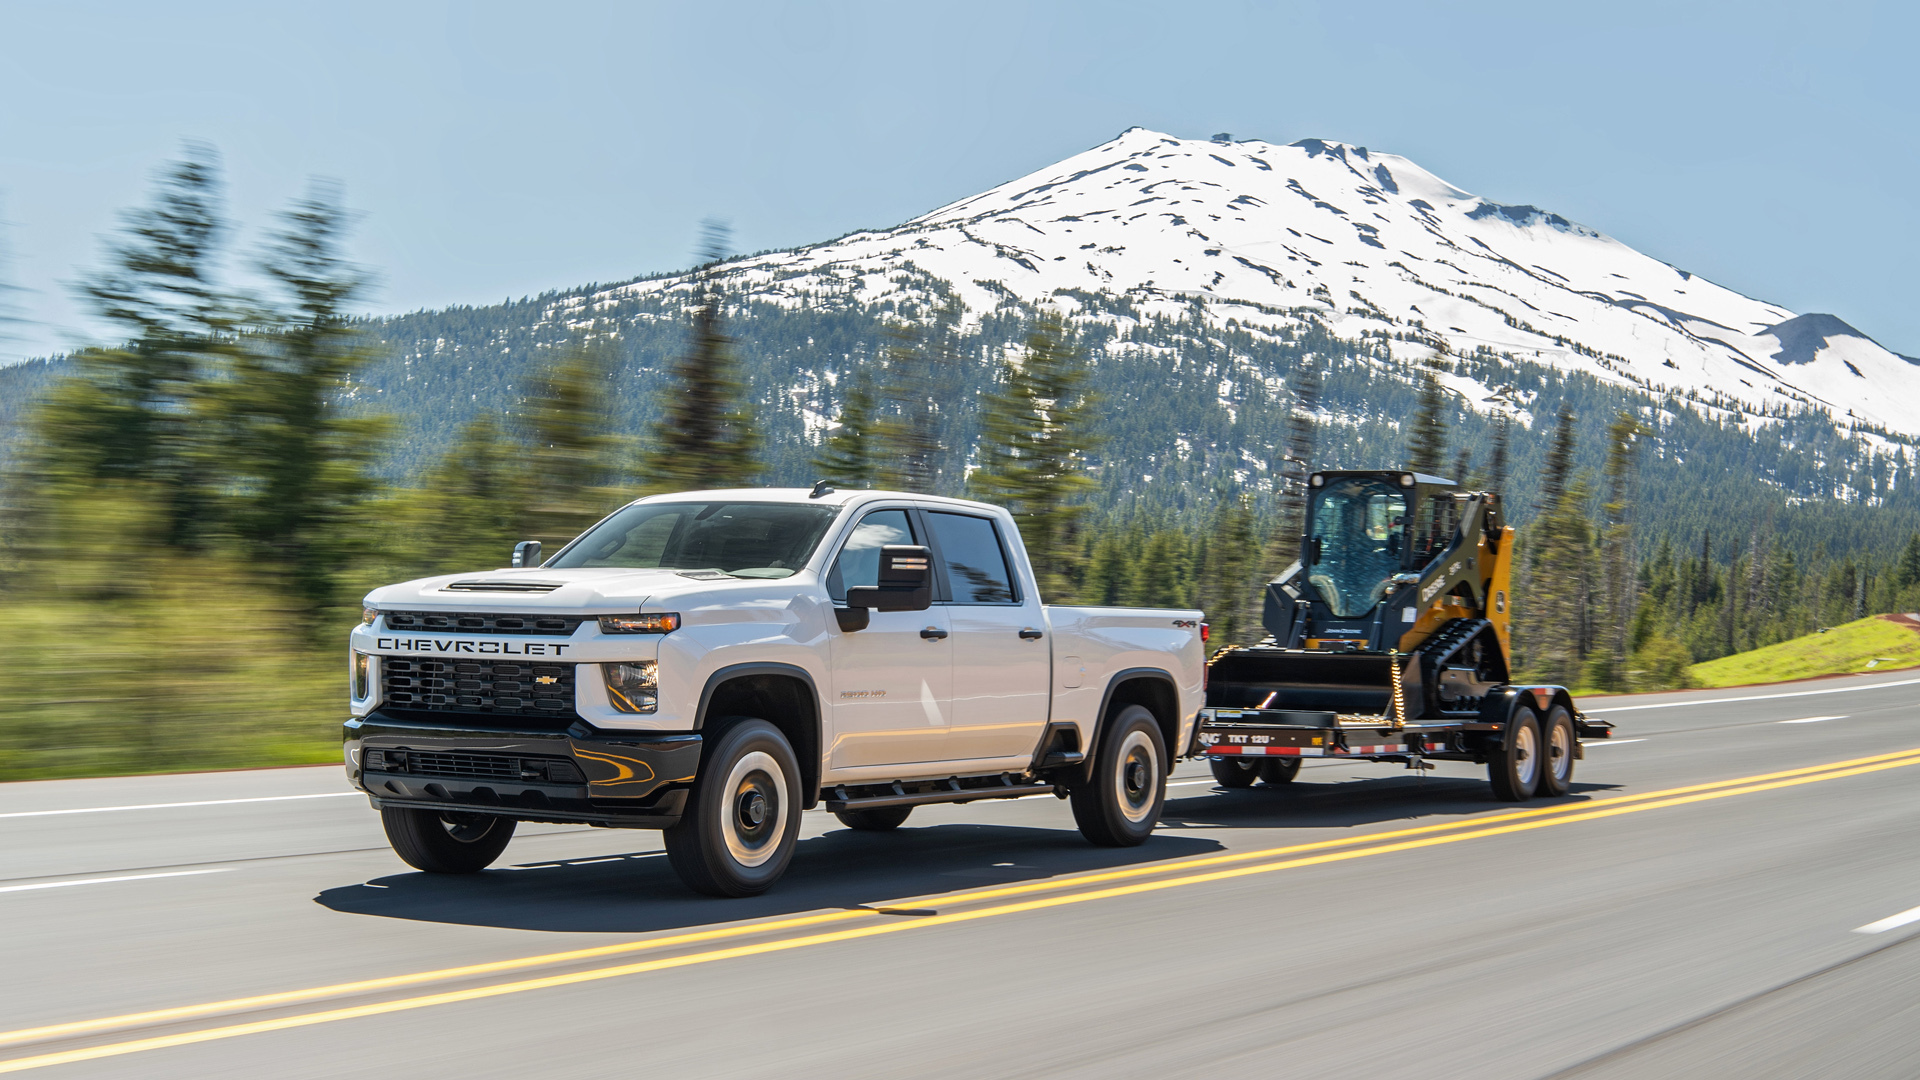 2020 Chevrolet Silverado Hd First Drive Review What S New Towing